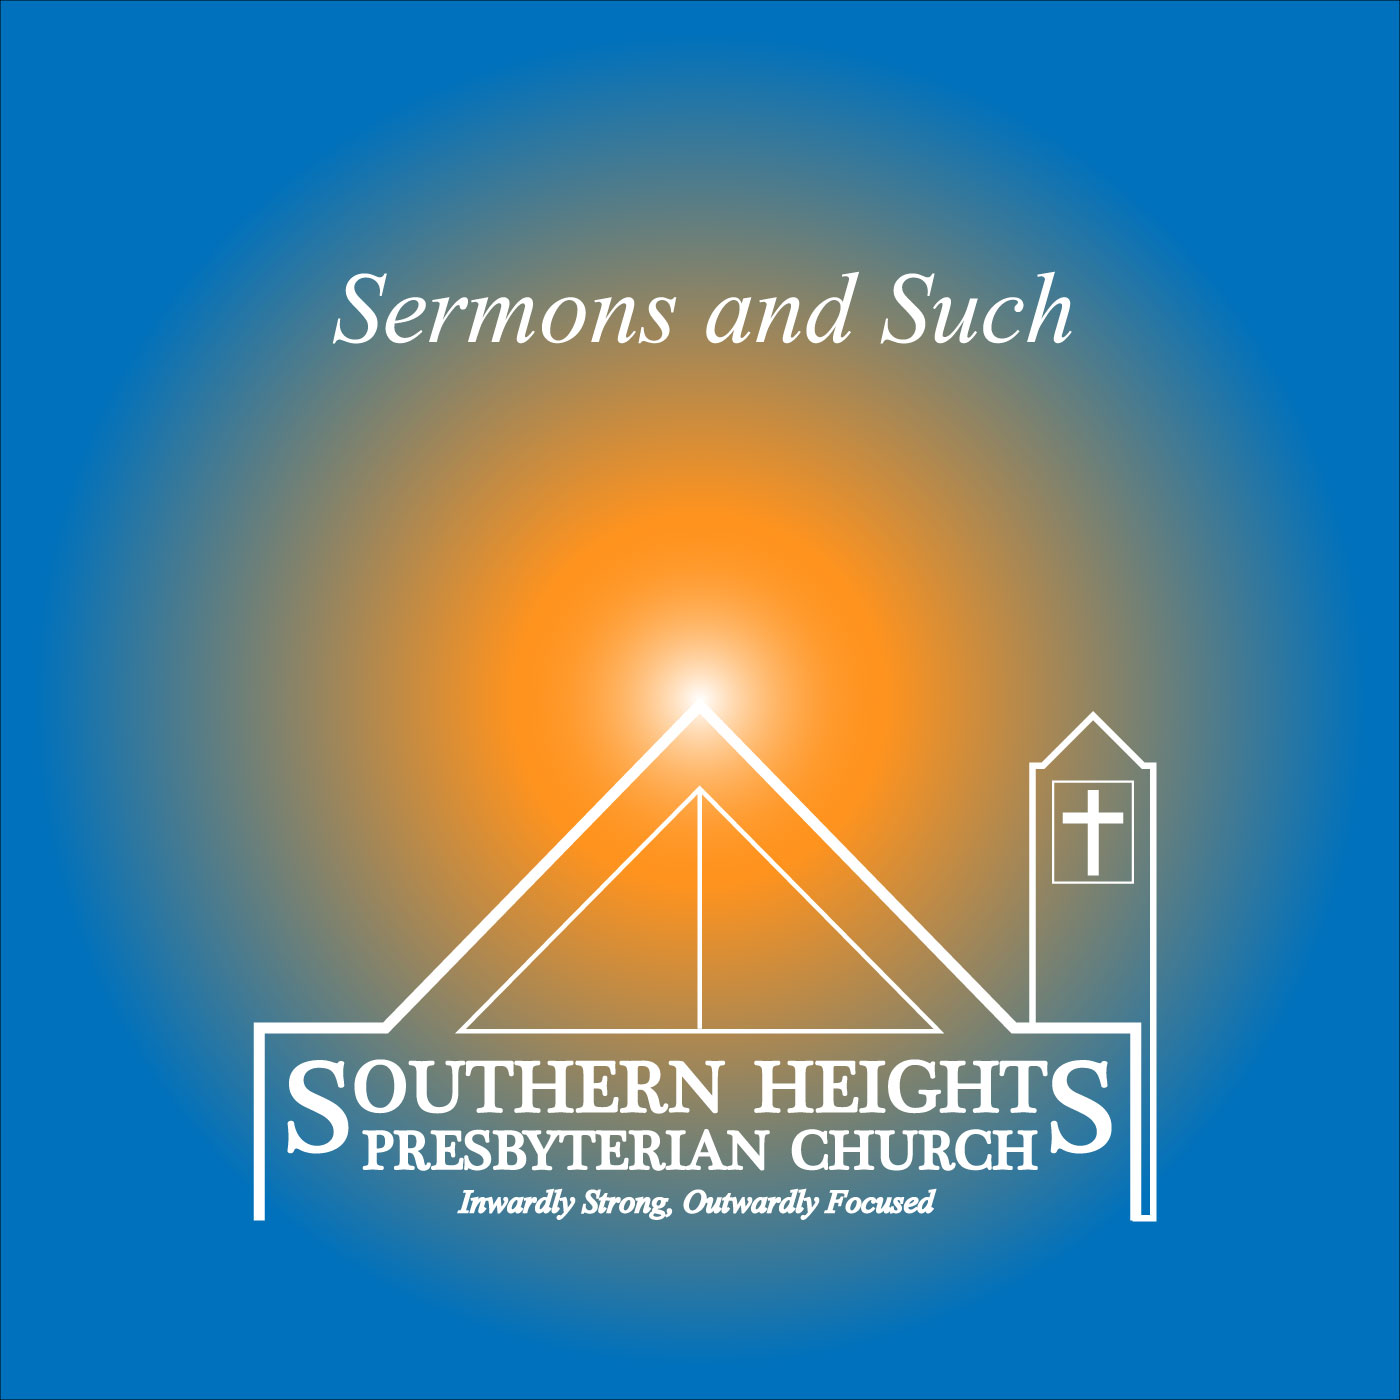 Sermons and Such - Southern Heights Presbyterian Church